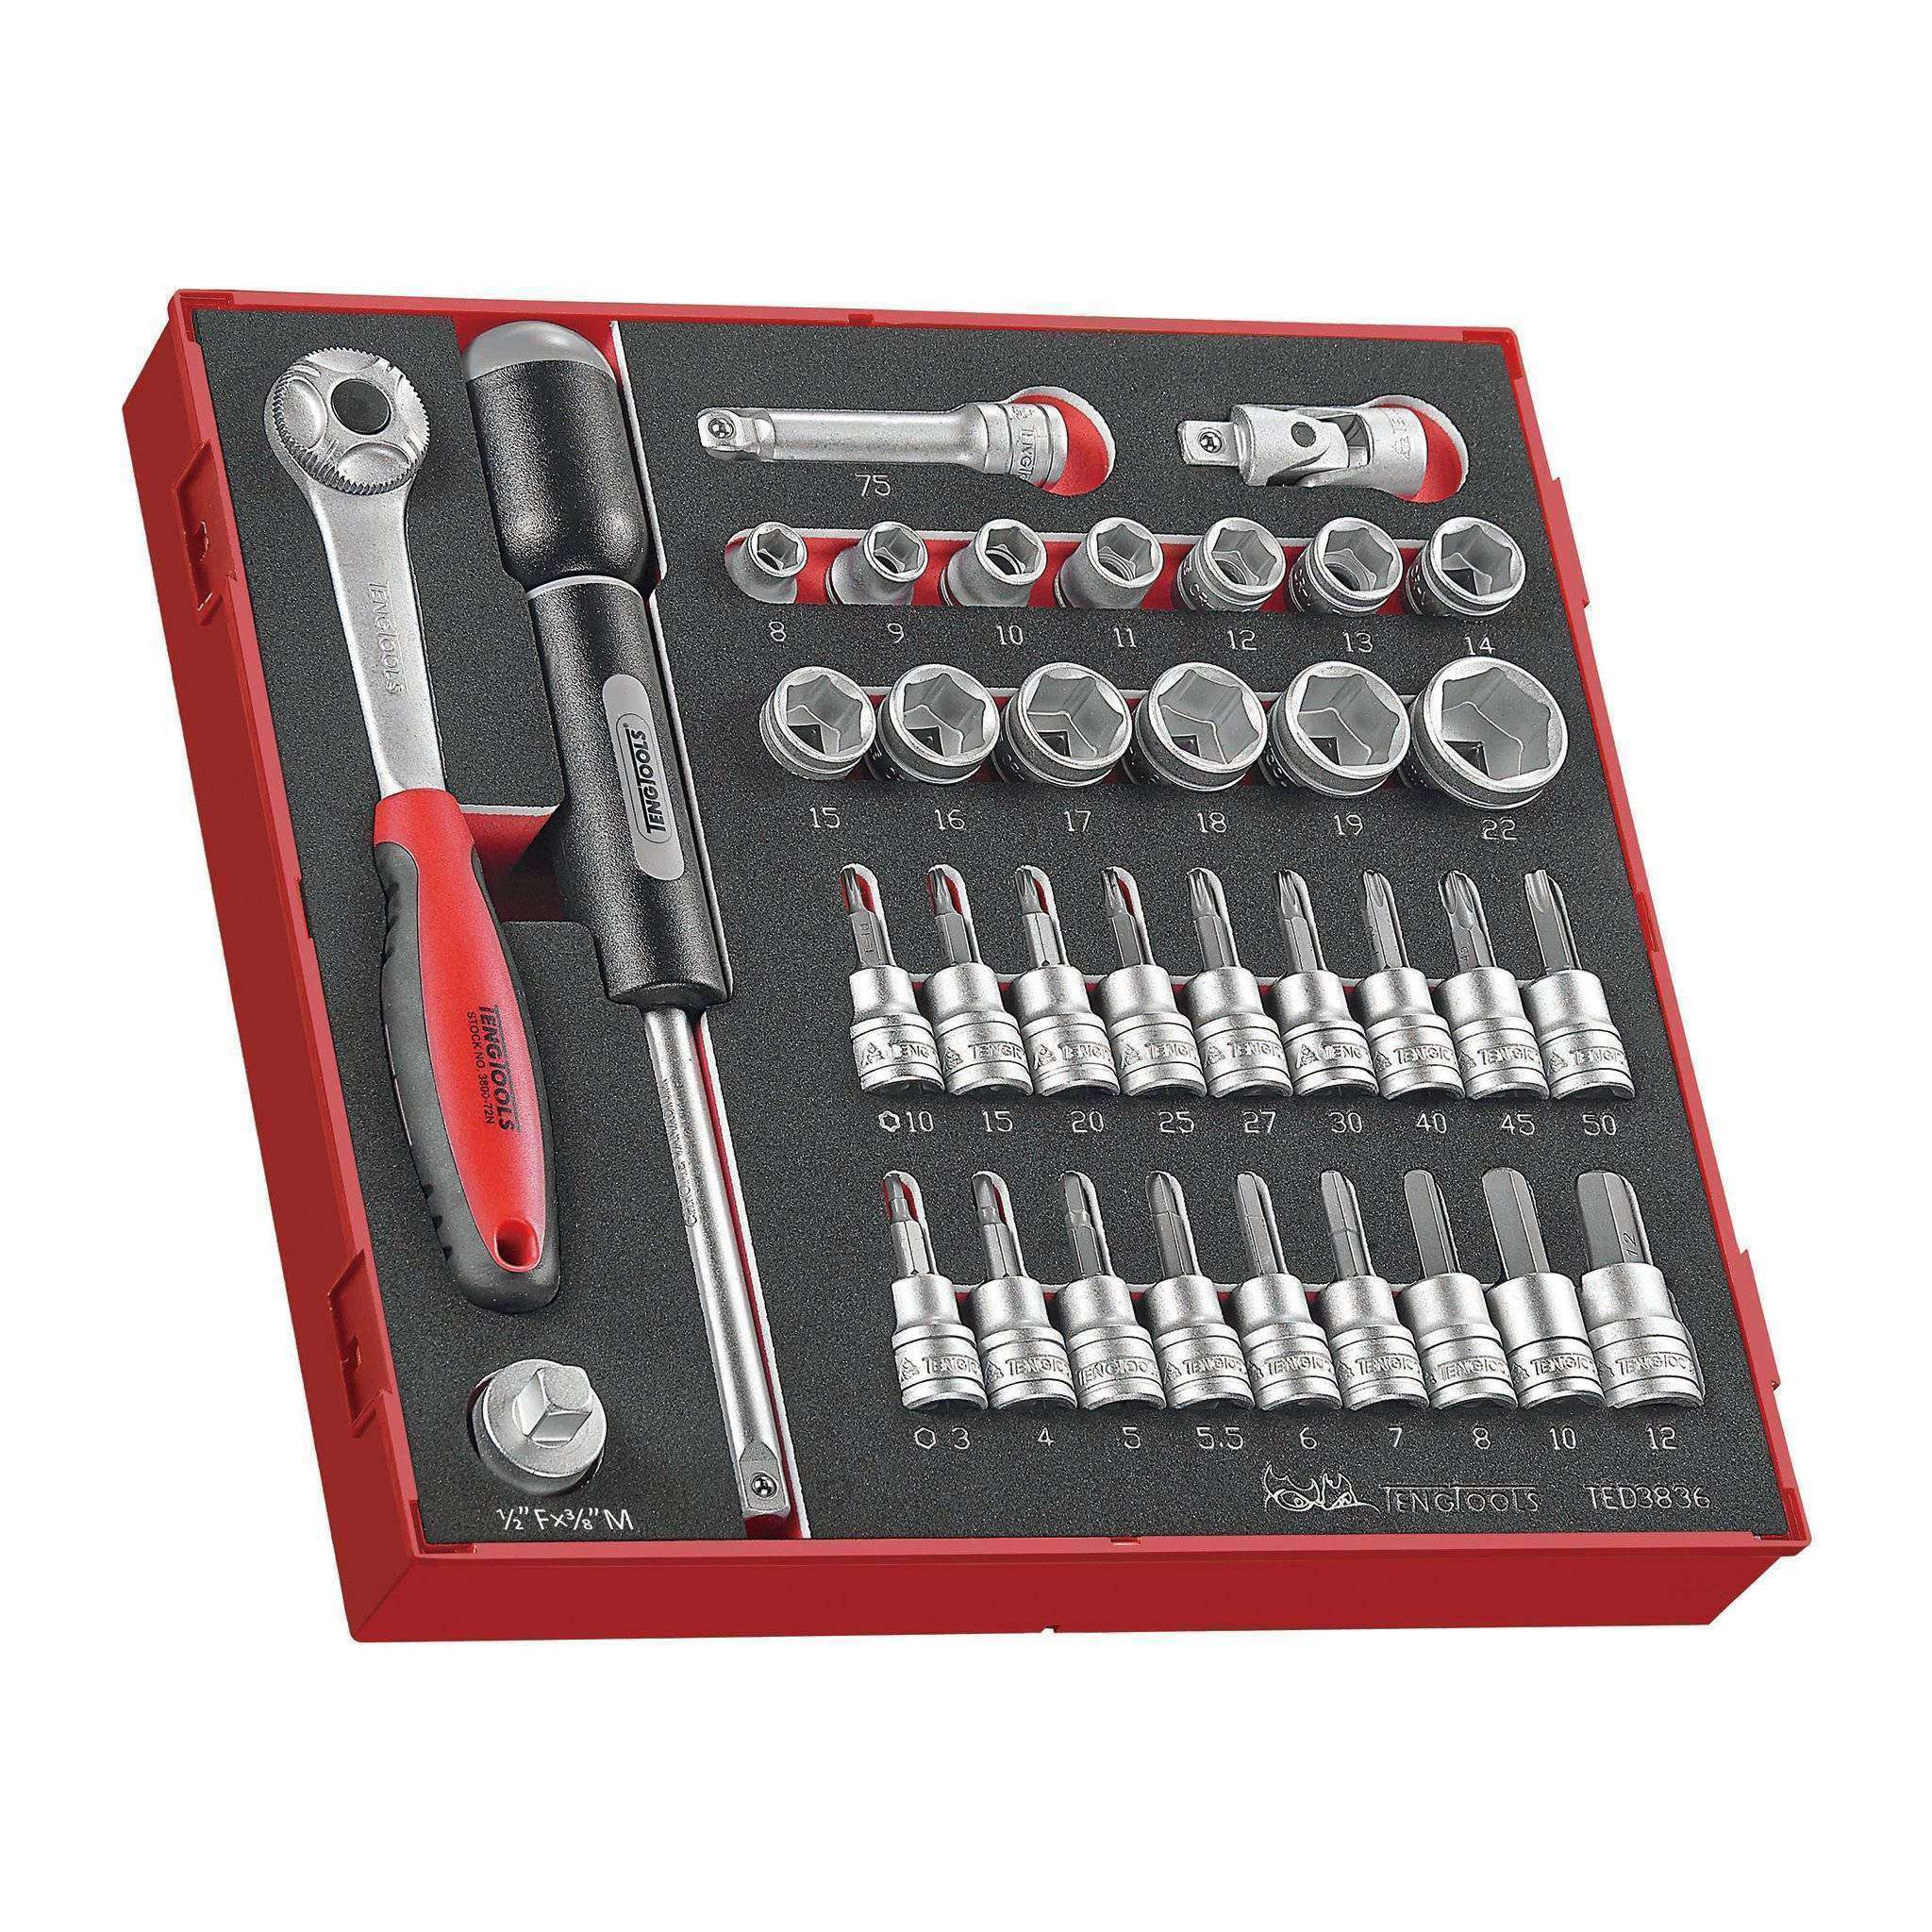 Teng Tools - 36 Piece 3/8 inch Drive Socket Set in EVA Tray - TEN-O-TED3836 - Teng Tools USA